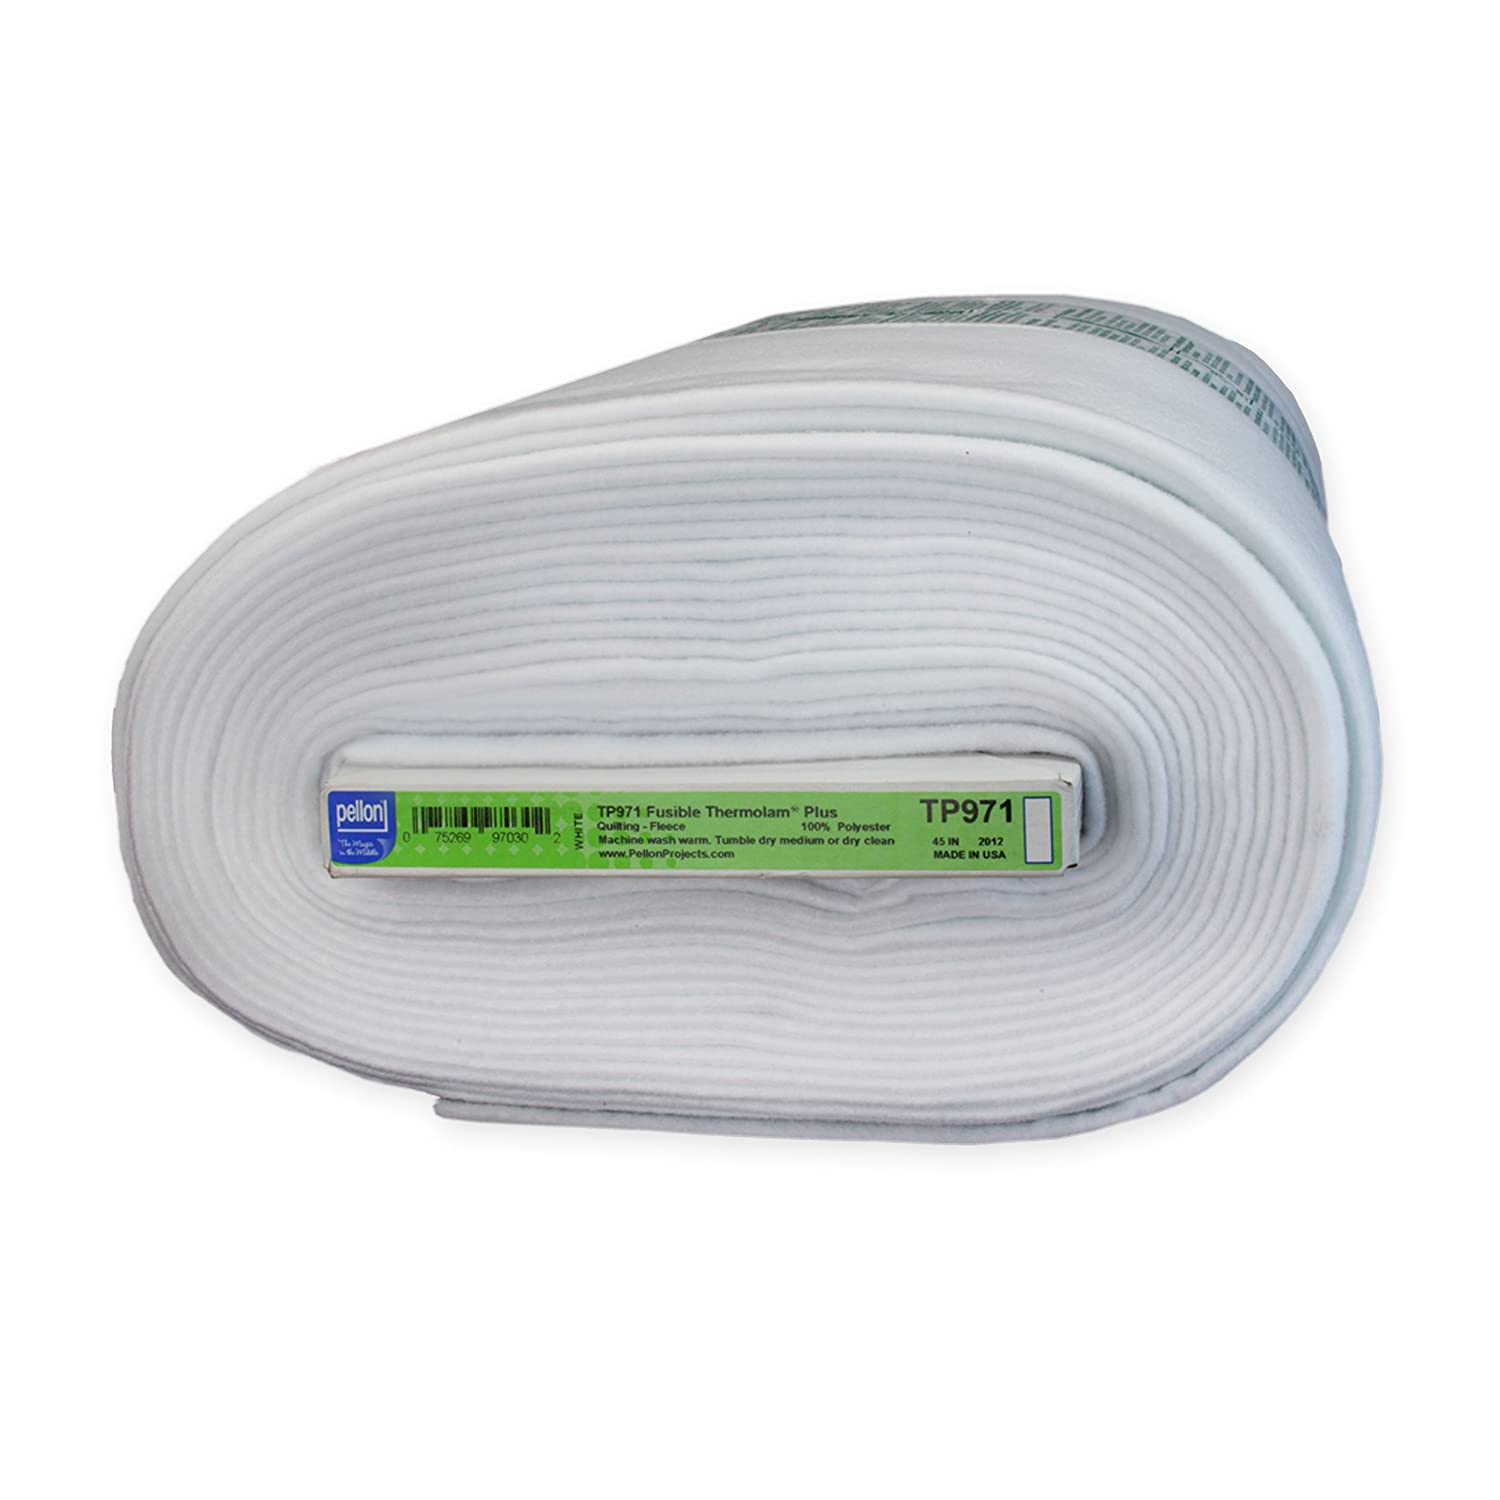 45 x 10 yards Pellon TP971F Fusible Thermolam Plus